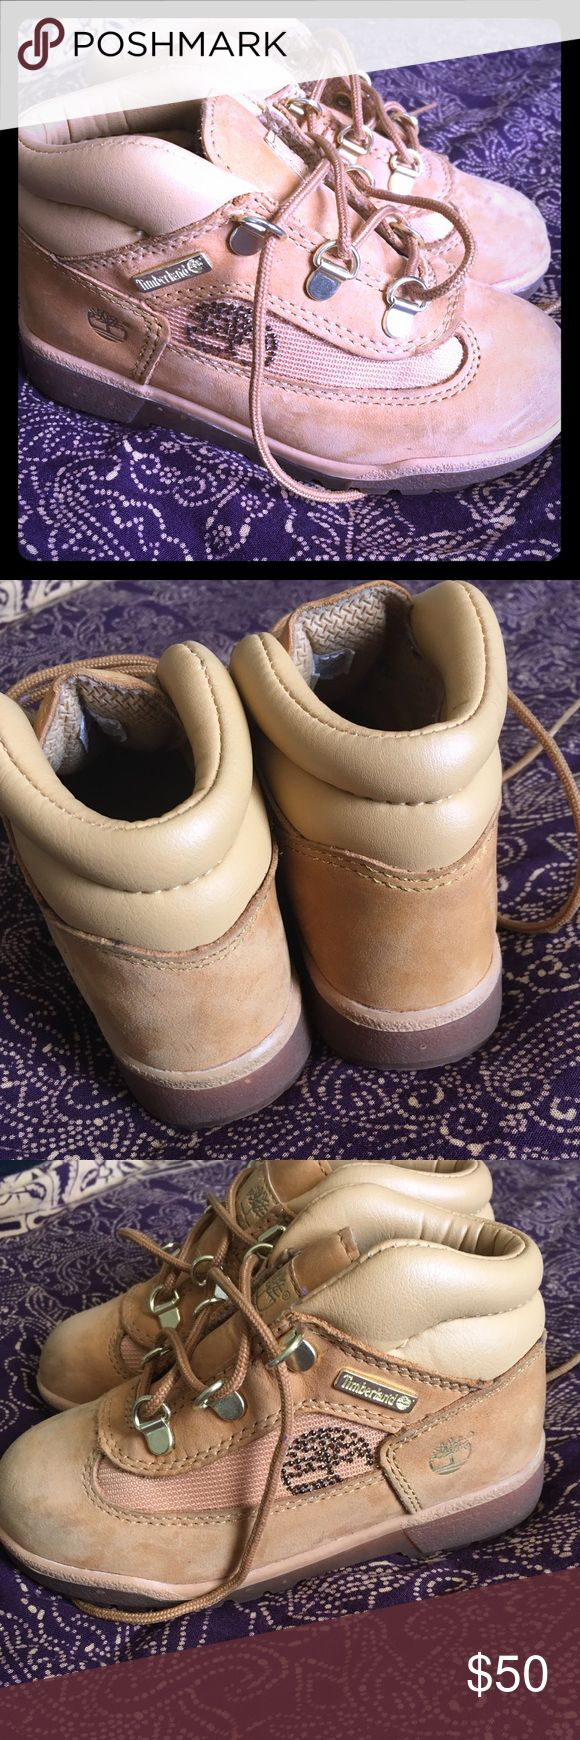 Timberland toddler girl boots Great condition with glitter soles and leather upper timberland toddler 11.5 boots shows a little wear at the front nothing mayor super cute for hiking. Timberland Shoes Boots